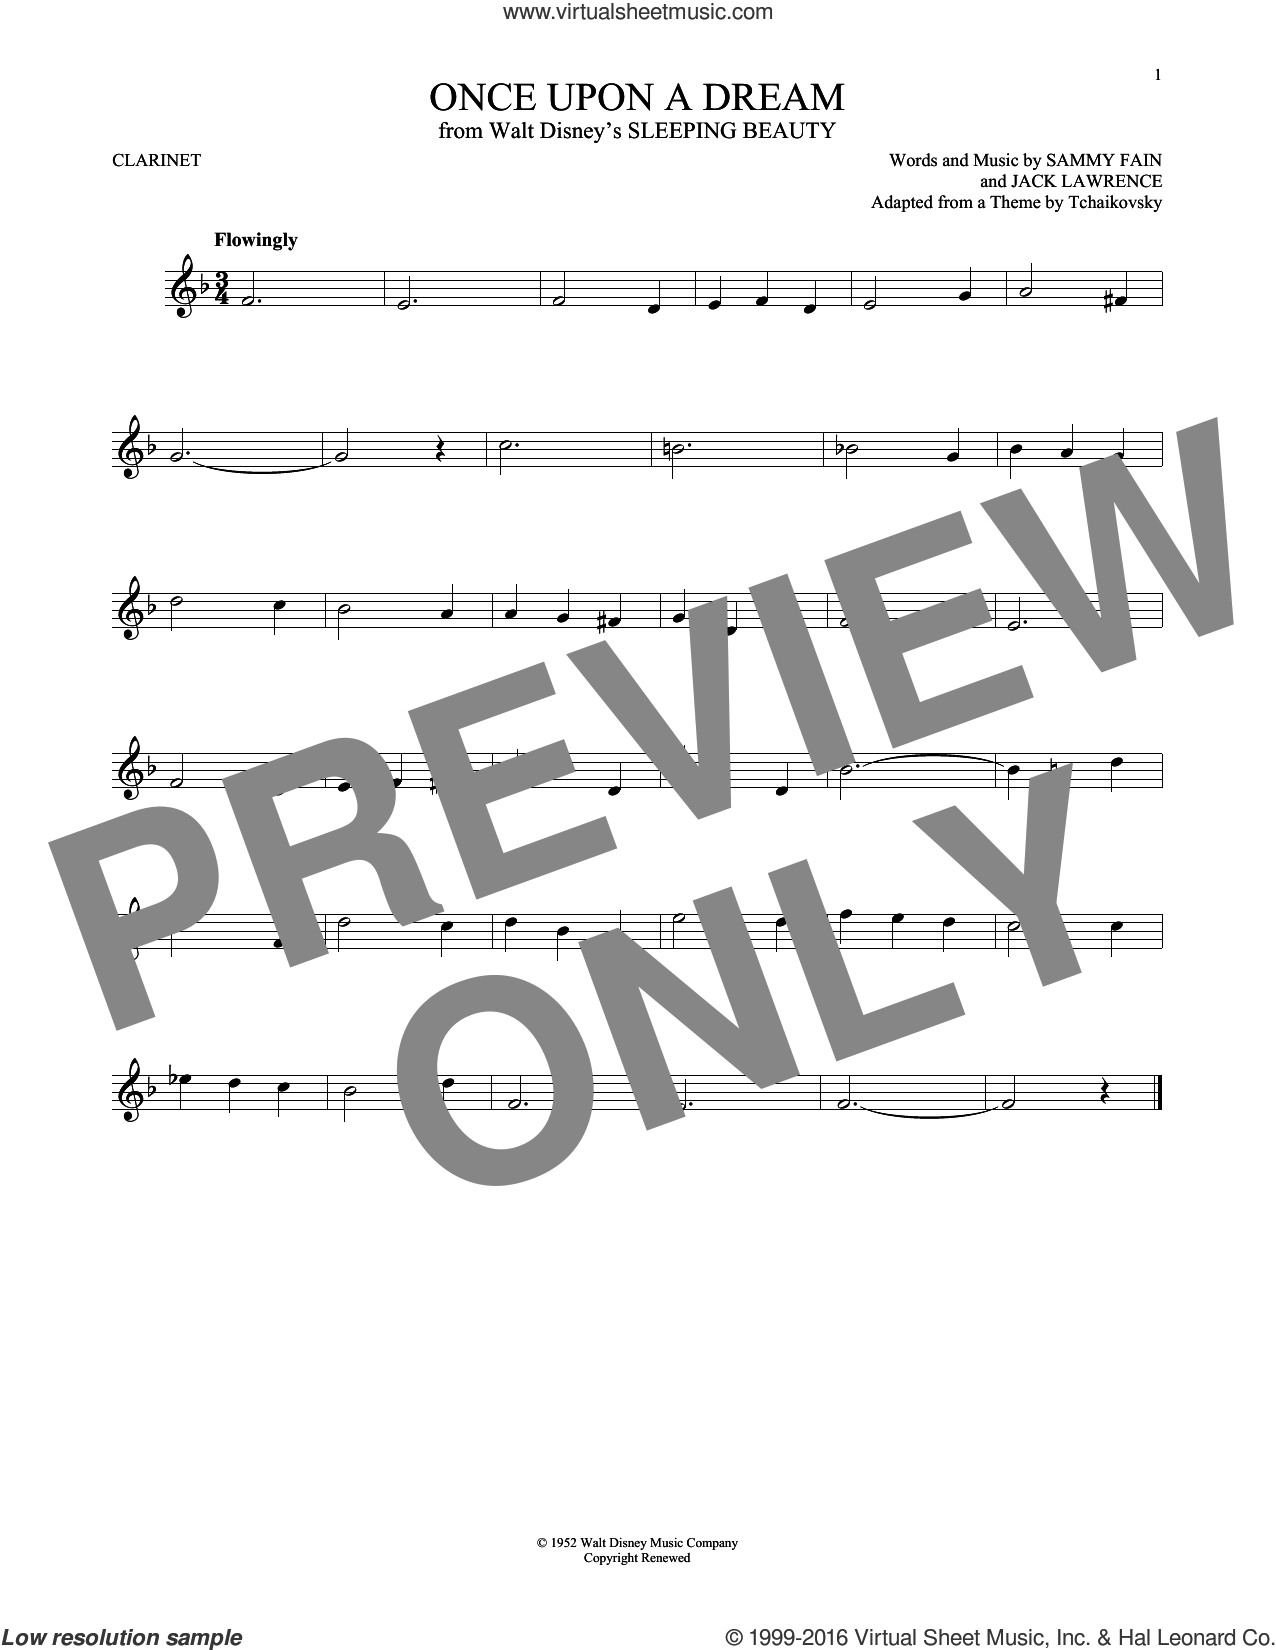 Once Upon A Dream sheet music for clarinet solo by Sammy Fain and Jack Lawrence, intermediate skill level